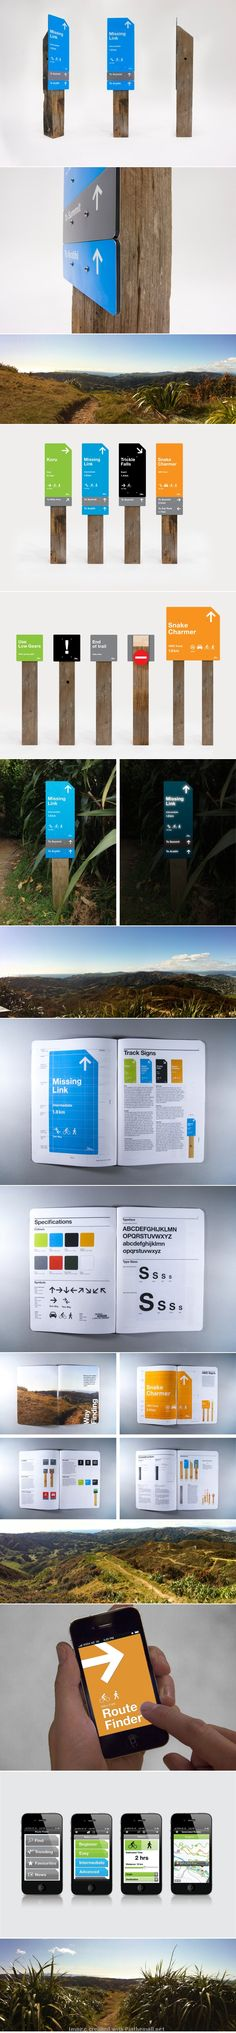 Makara Peak mountain bike trails wayfinding system, via Behance. Click image for full profile and visit the slowottawa.ca boards >> http://www.pinterest.com/slowottawa/